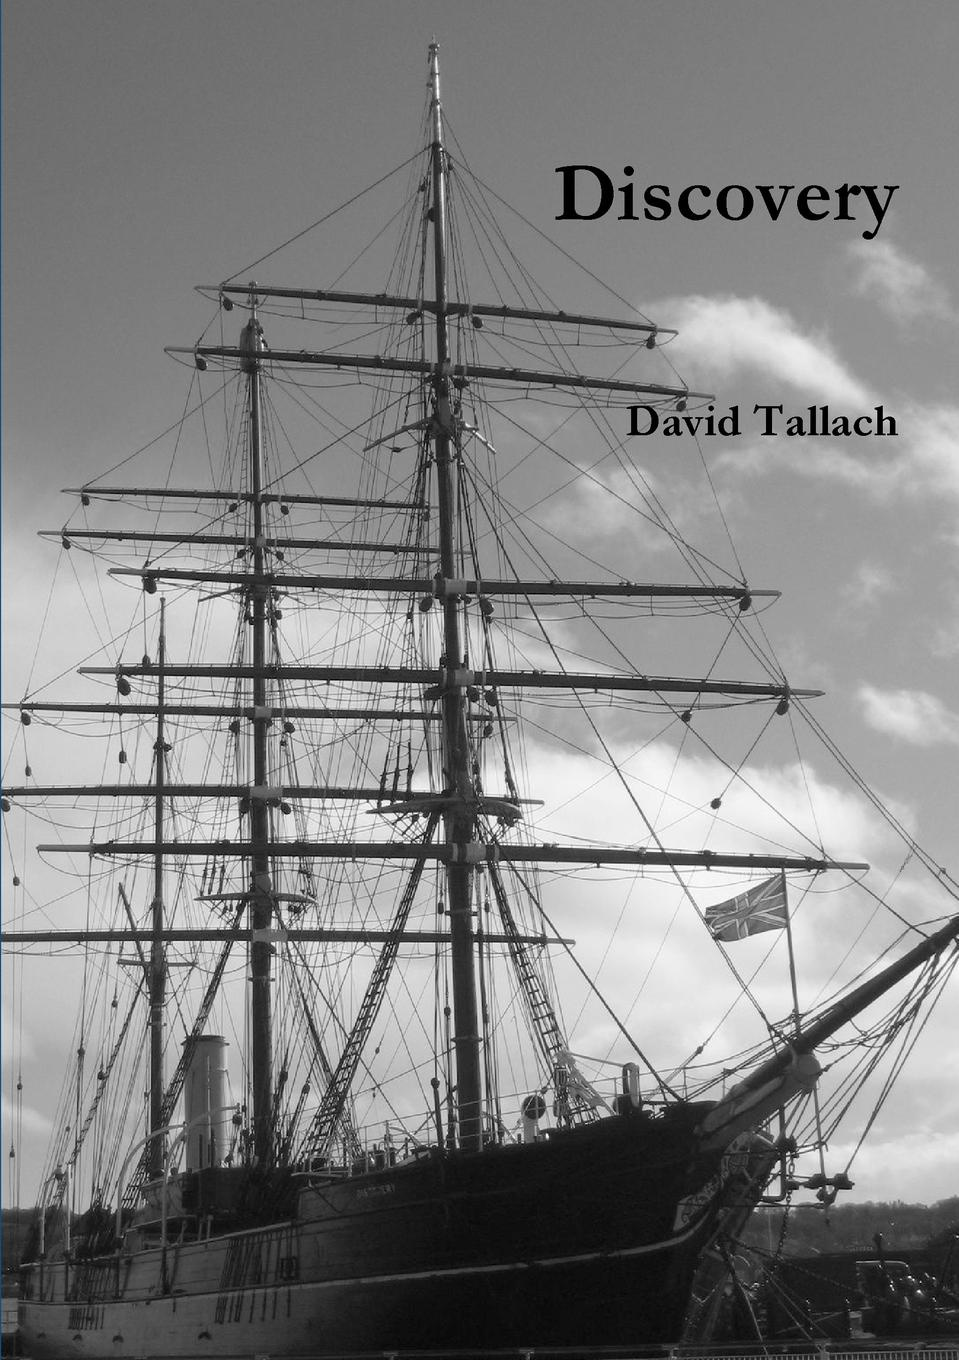 David Tallach Discovery robert falcon scott last expedition volume 2